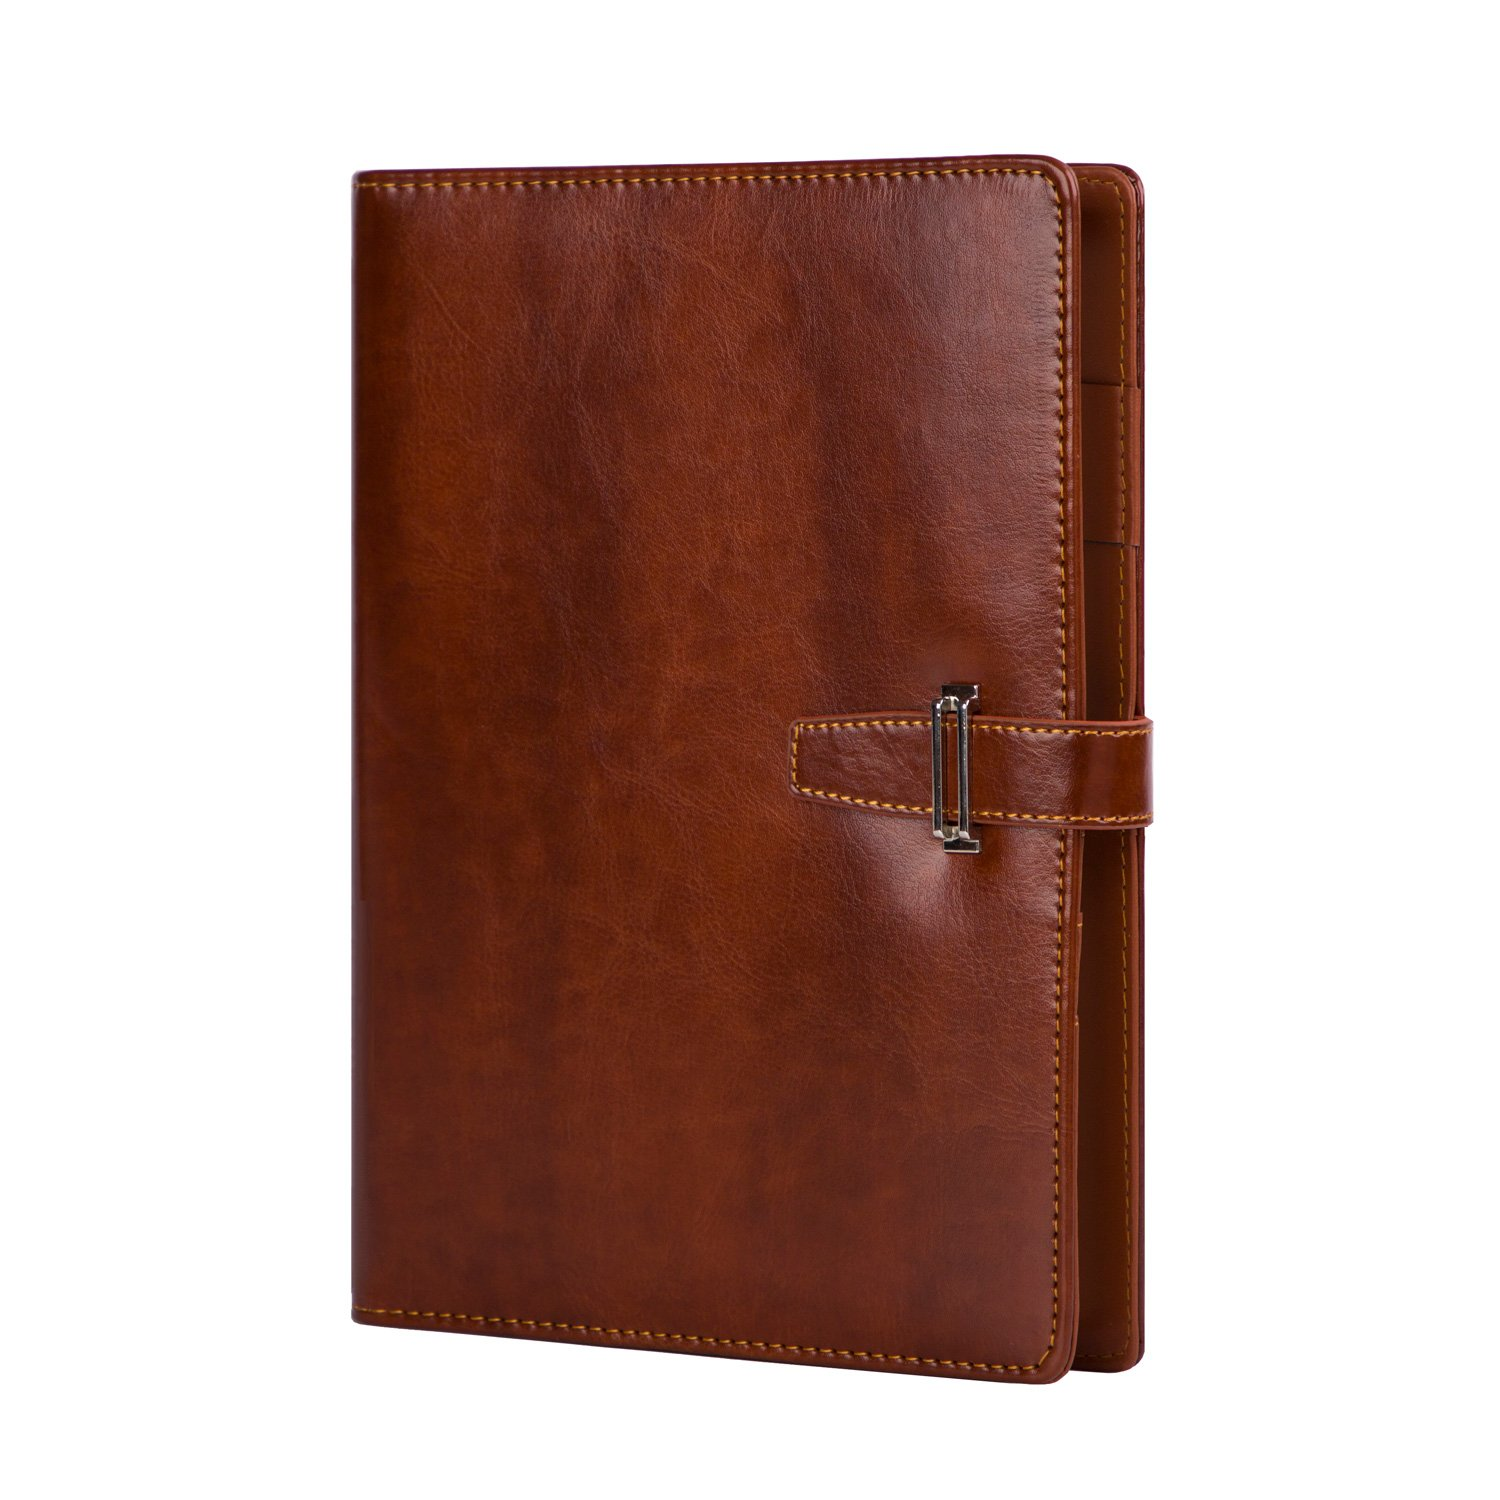 Binder Journal Organizer Planner Office Writing Composition Notebook Refillable Diary a5 Spiral Faux Leather Diary Journal Brown